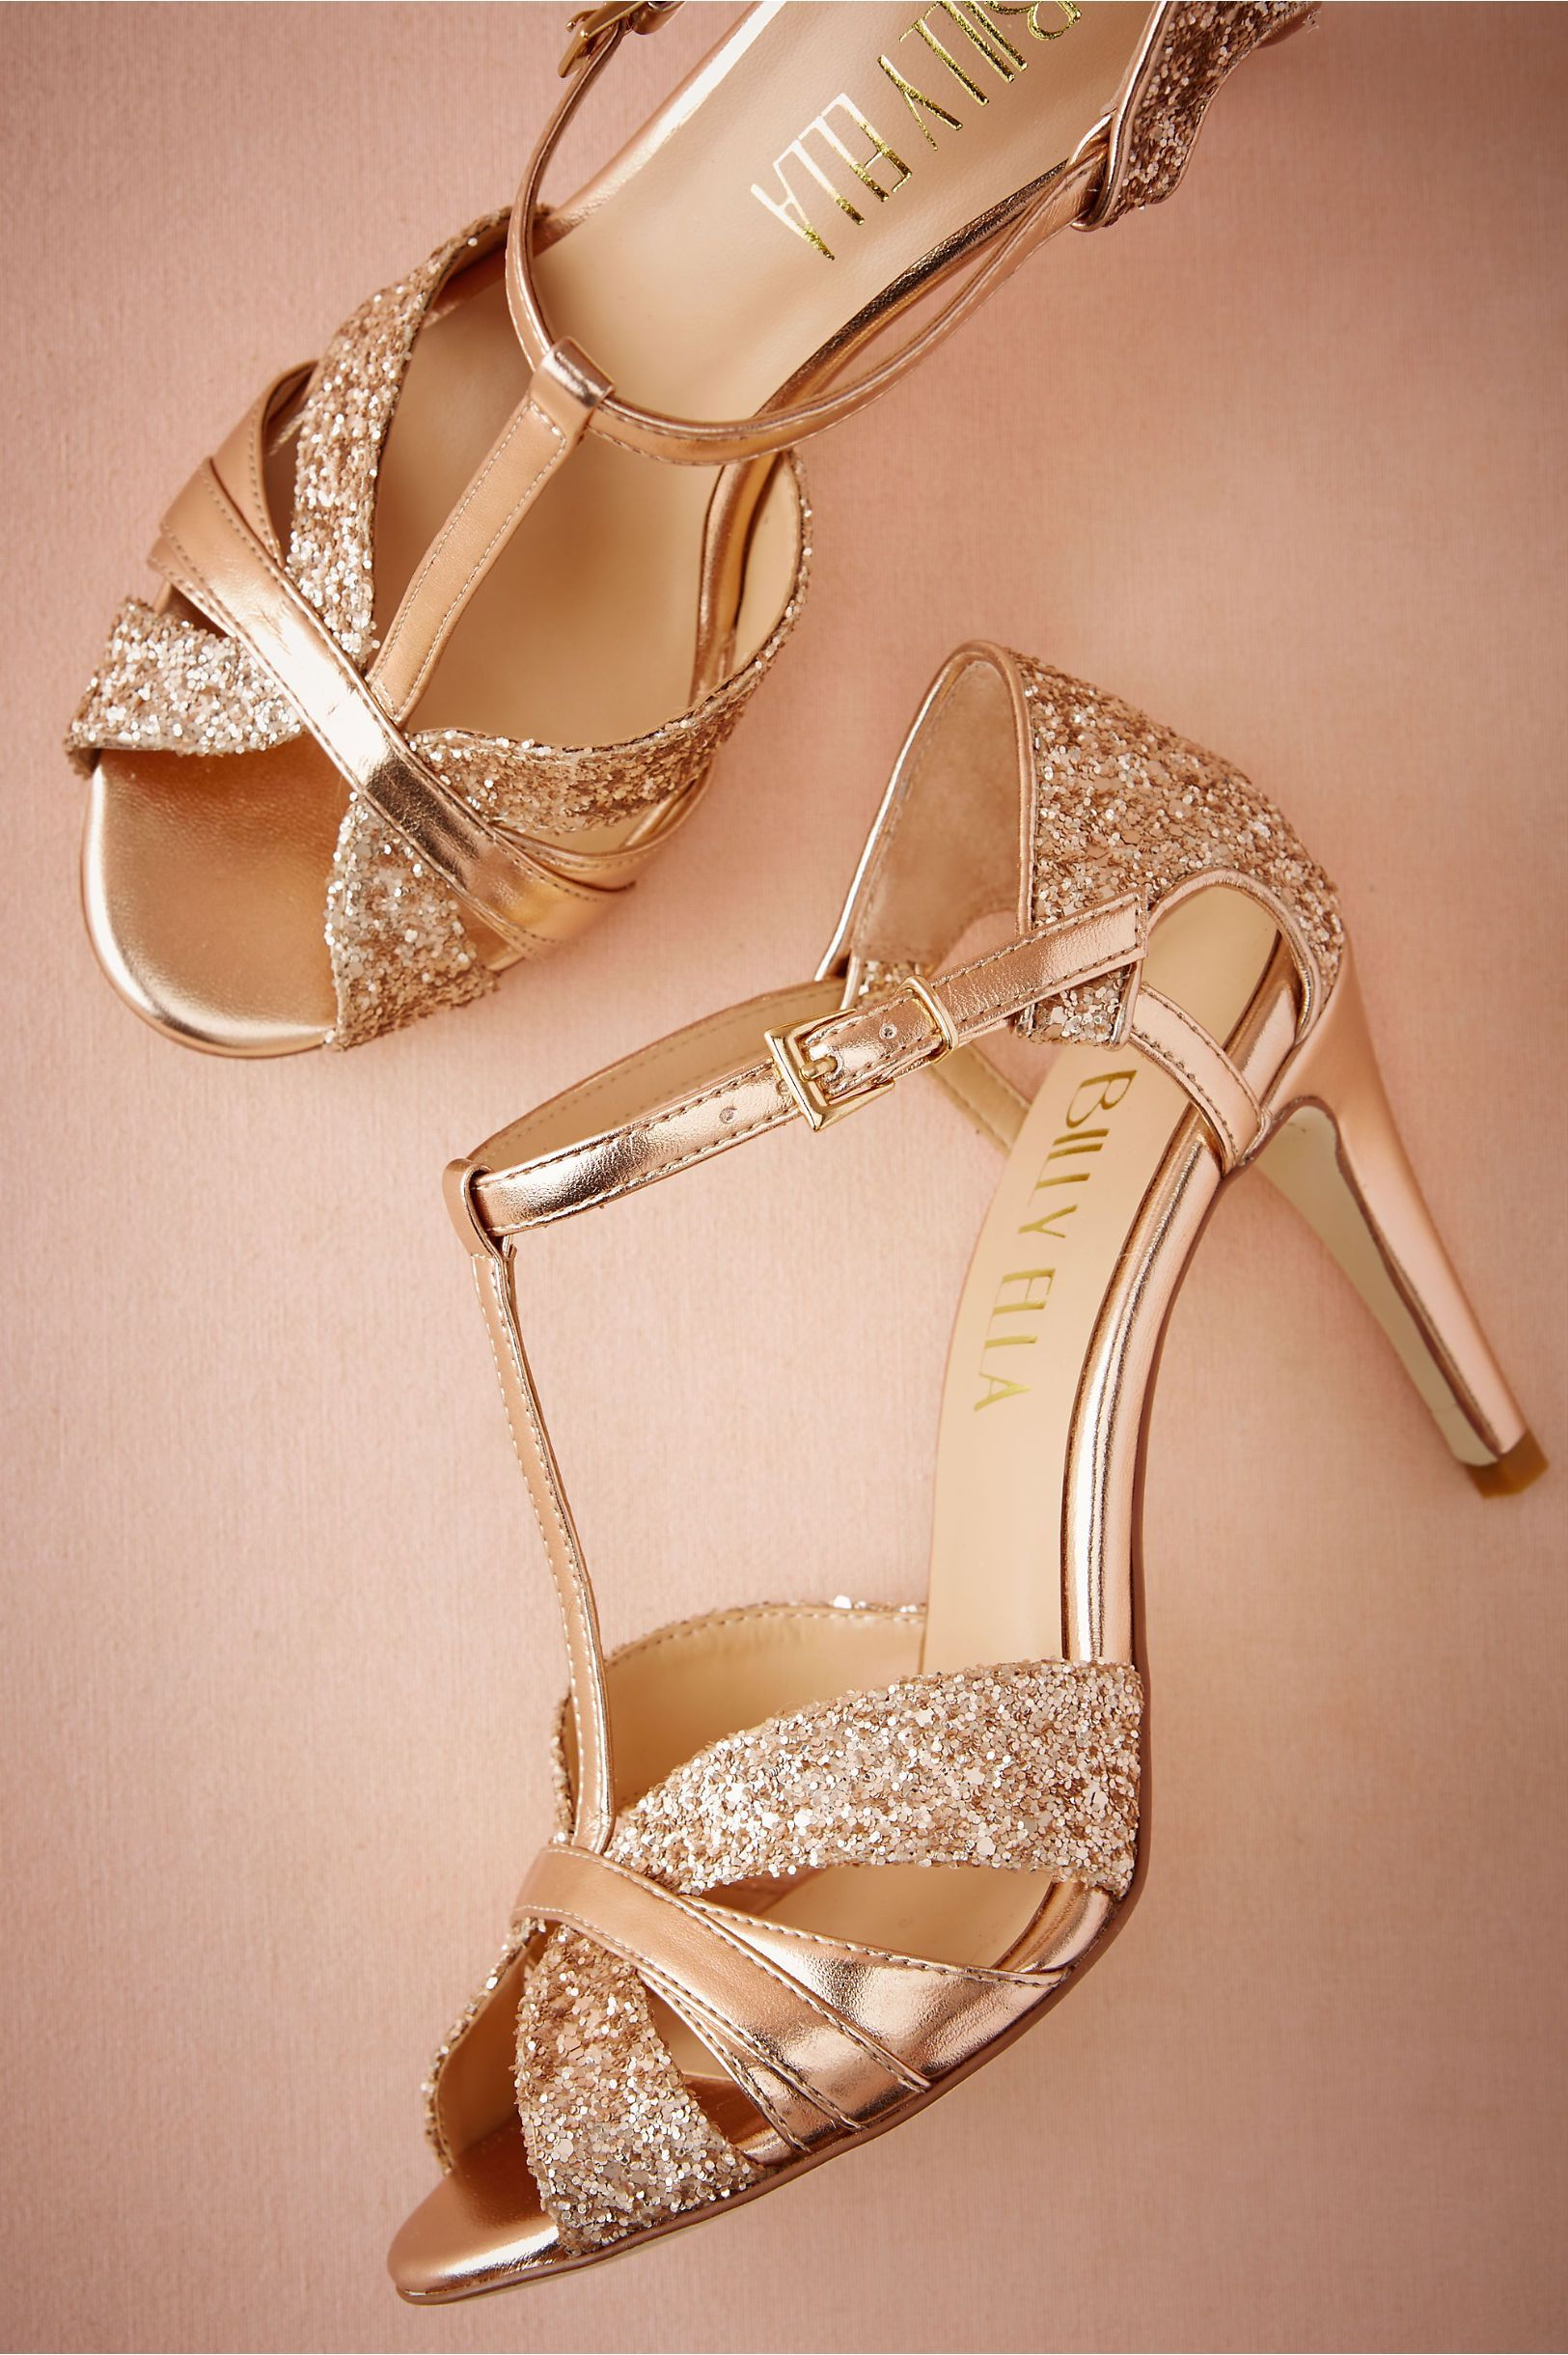 Gold dress shoes for wedding  BHLDN Lucia TStraps in Bride Bridal Shoes at BHLDN  Wedding Shoes